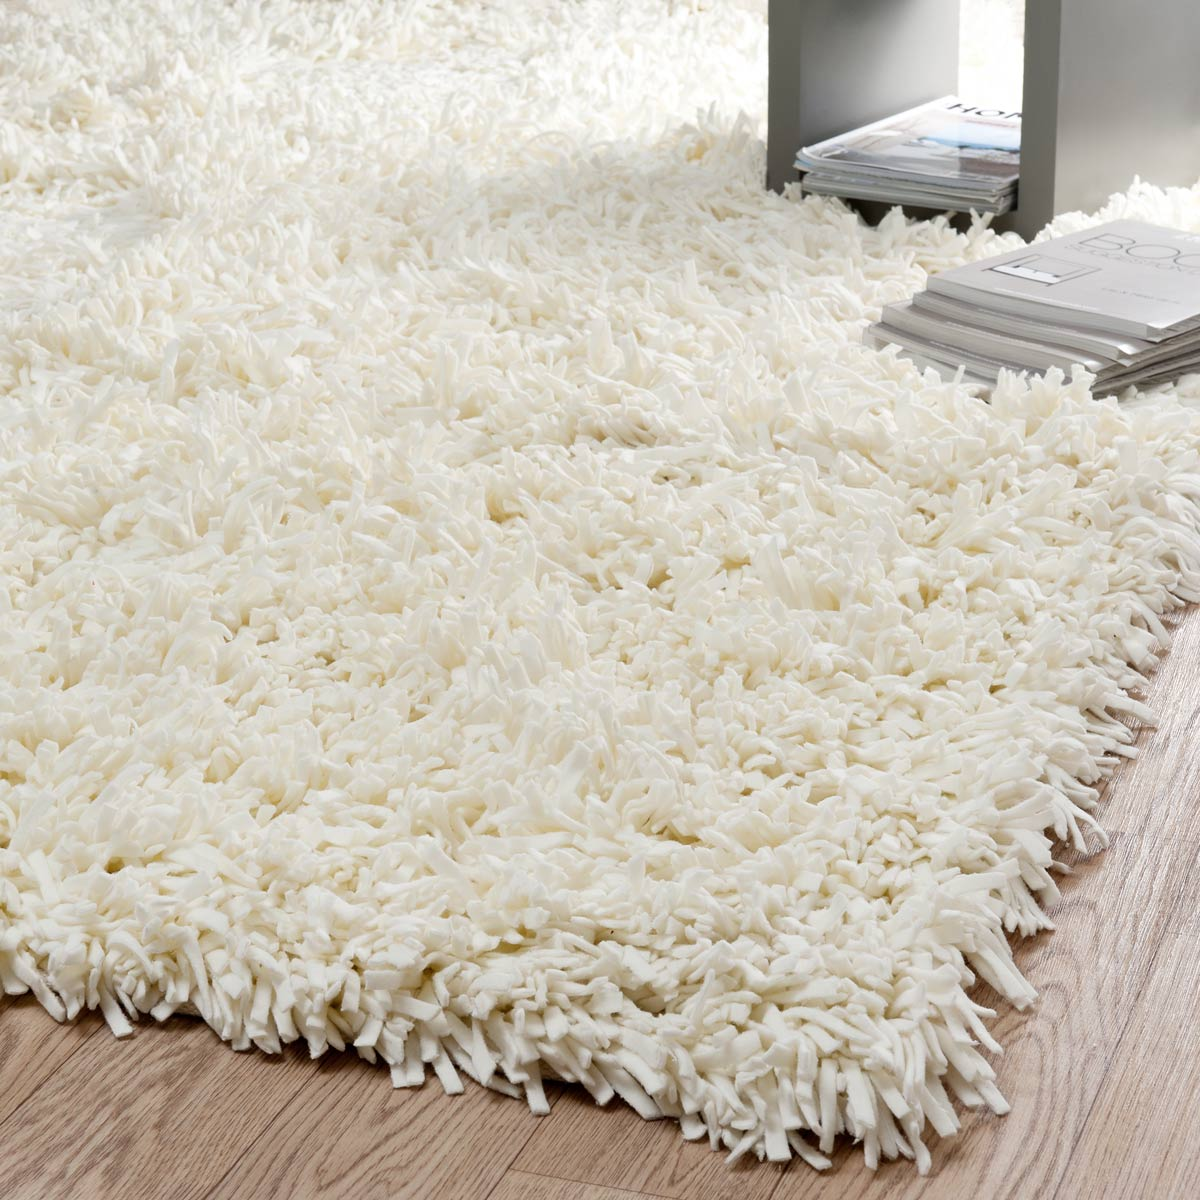 Les types de tapis d coration portail maison - Les differents types de tapis ...